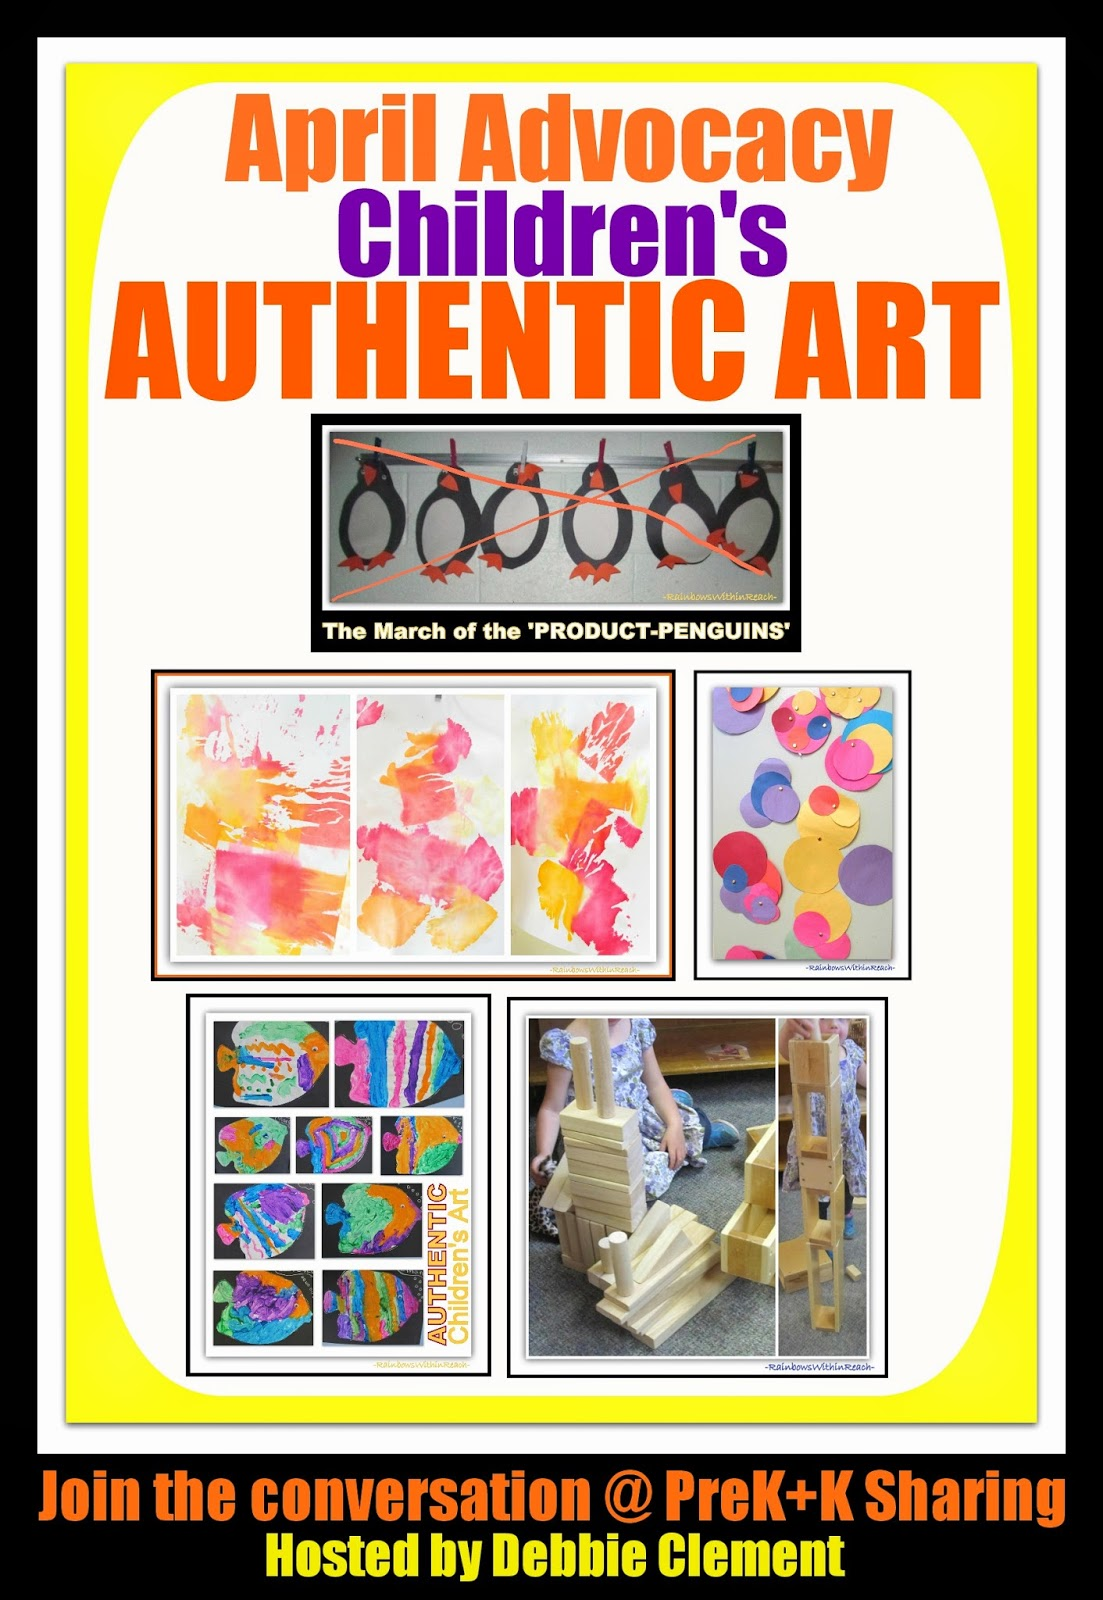 April Advocacy for Young Children: Week of the Young Child & More, Art AUTHENTICITY for Children